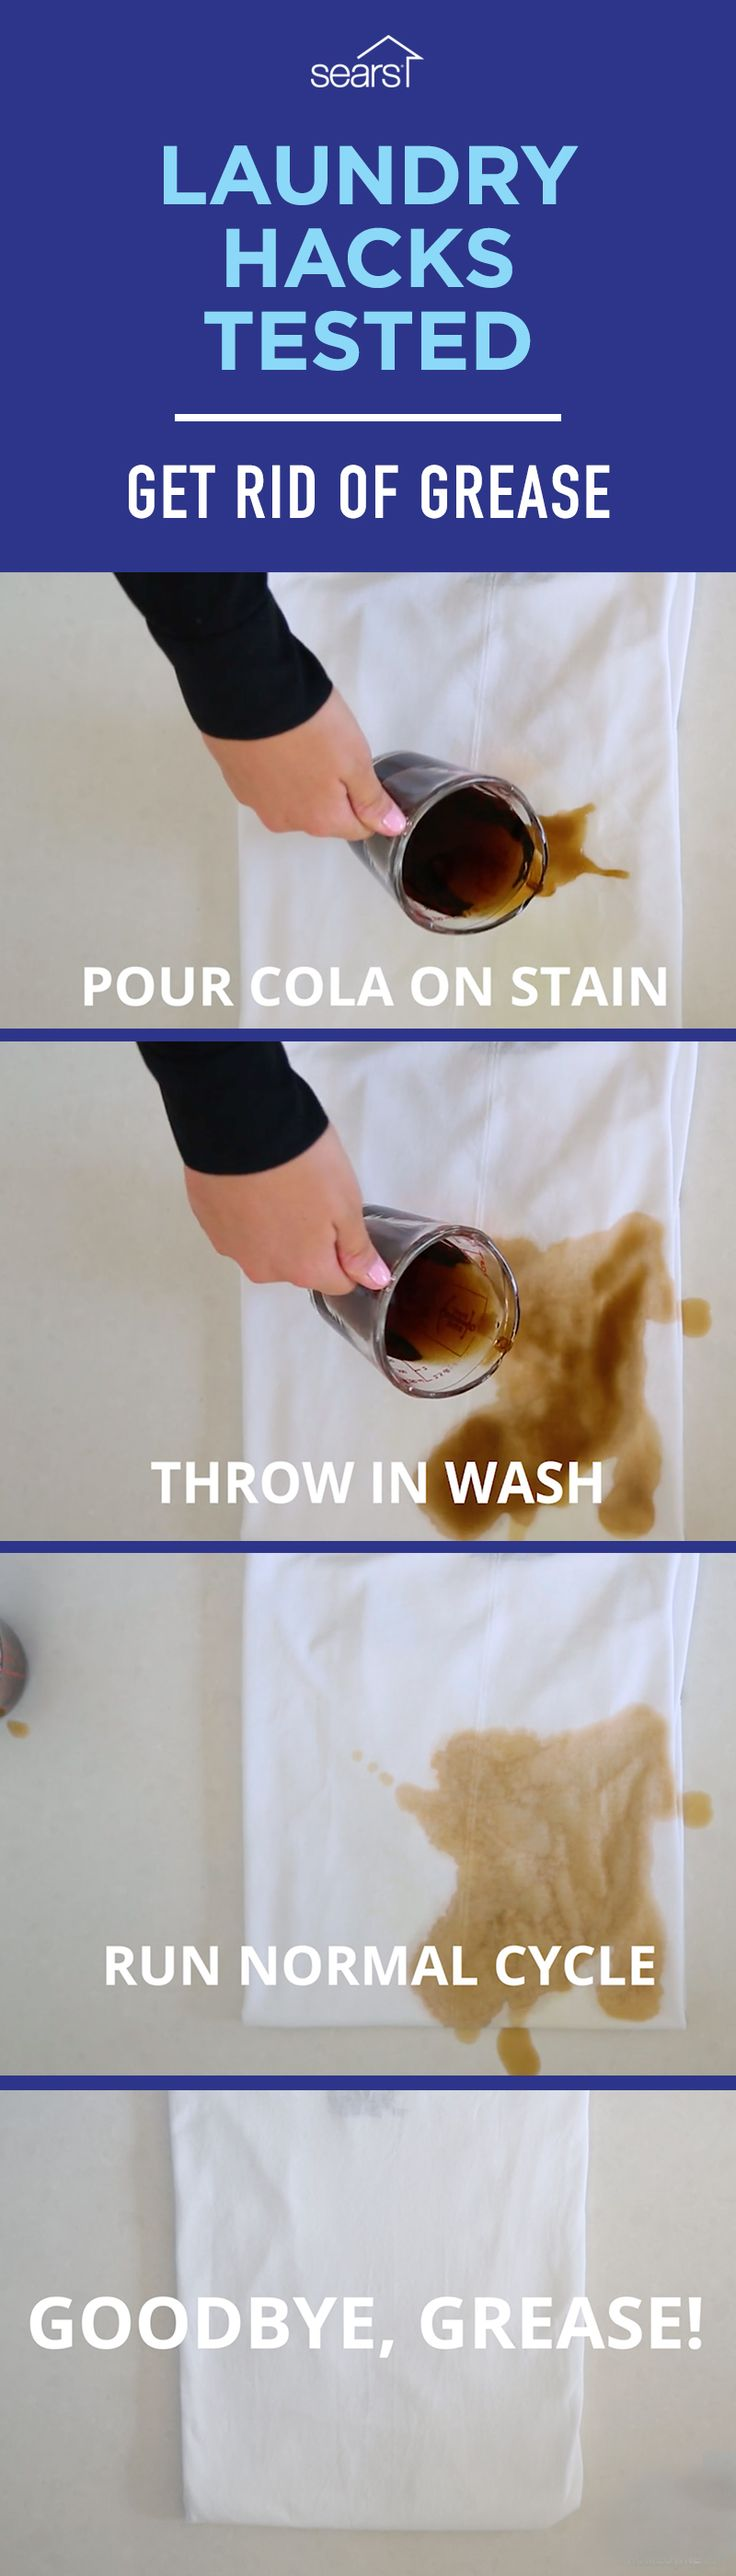 Laundry Hacks — Tested! We've tested the popular laundry hack of using cola to get rid of grease stains. Pour some cola on a grease stain and let it sit, then throw it in the washer and run a normal cycle. Apparently, cola cleans those tough-to-get-out grease stains and also helps deodorize smelly clothes. Have you tried this laundry hack? Visit the Sears Home Services Knowledge Center to find out if this hack, and more laundry hacks, actually work!